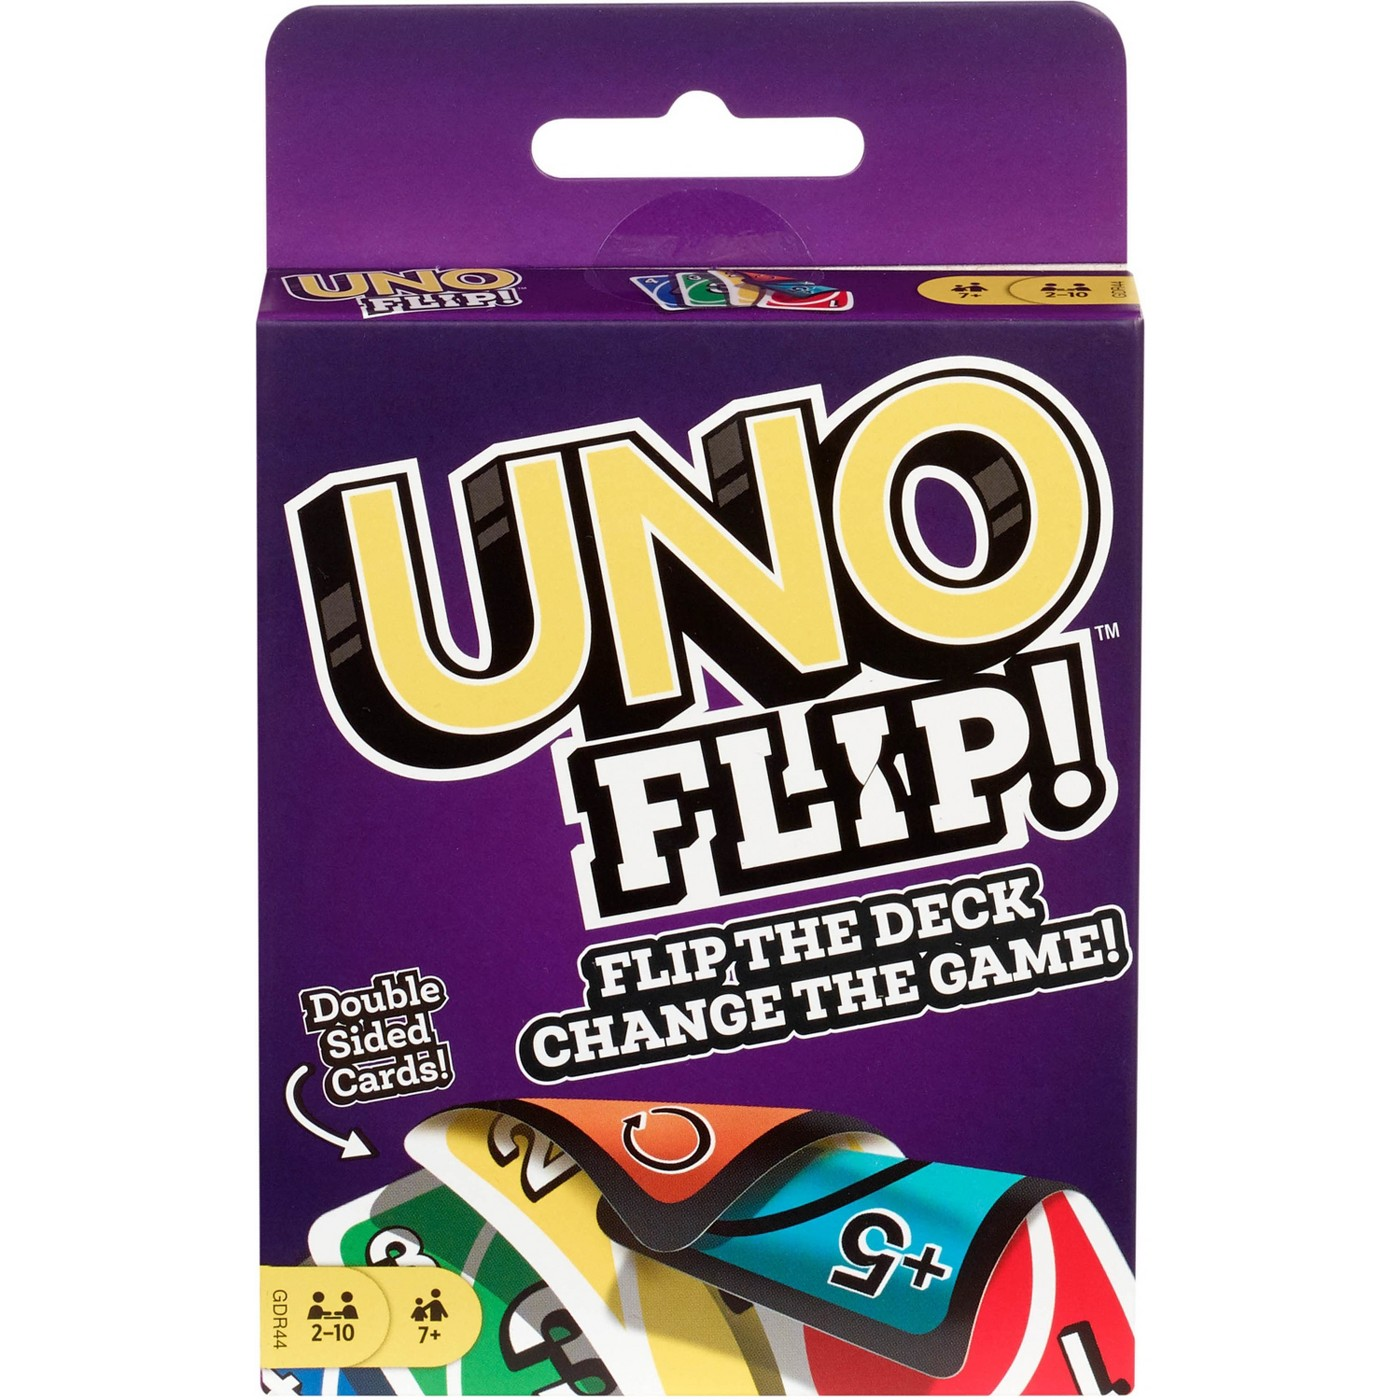 UNO Flip Card Game - image 1 of 7